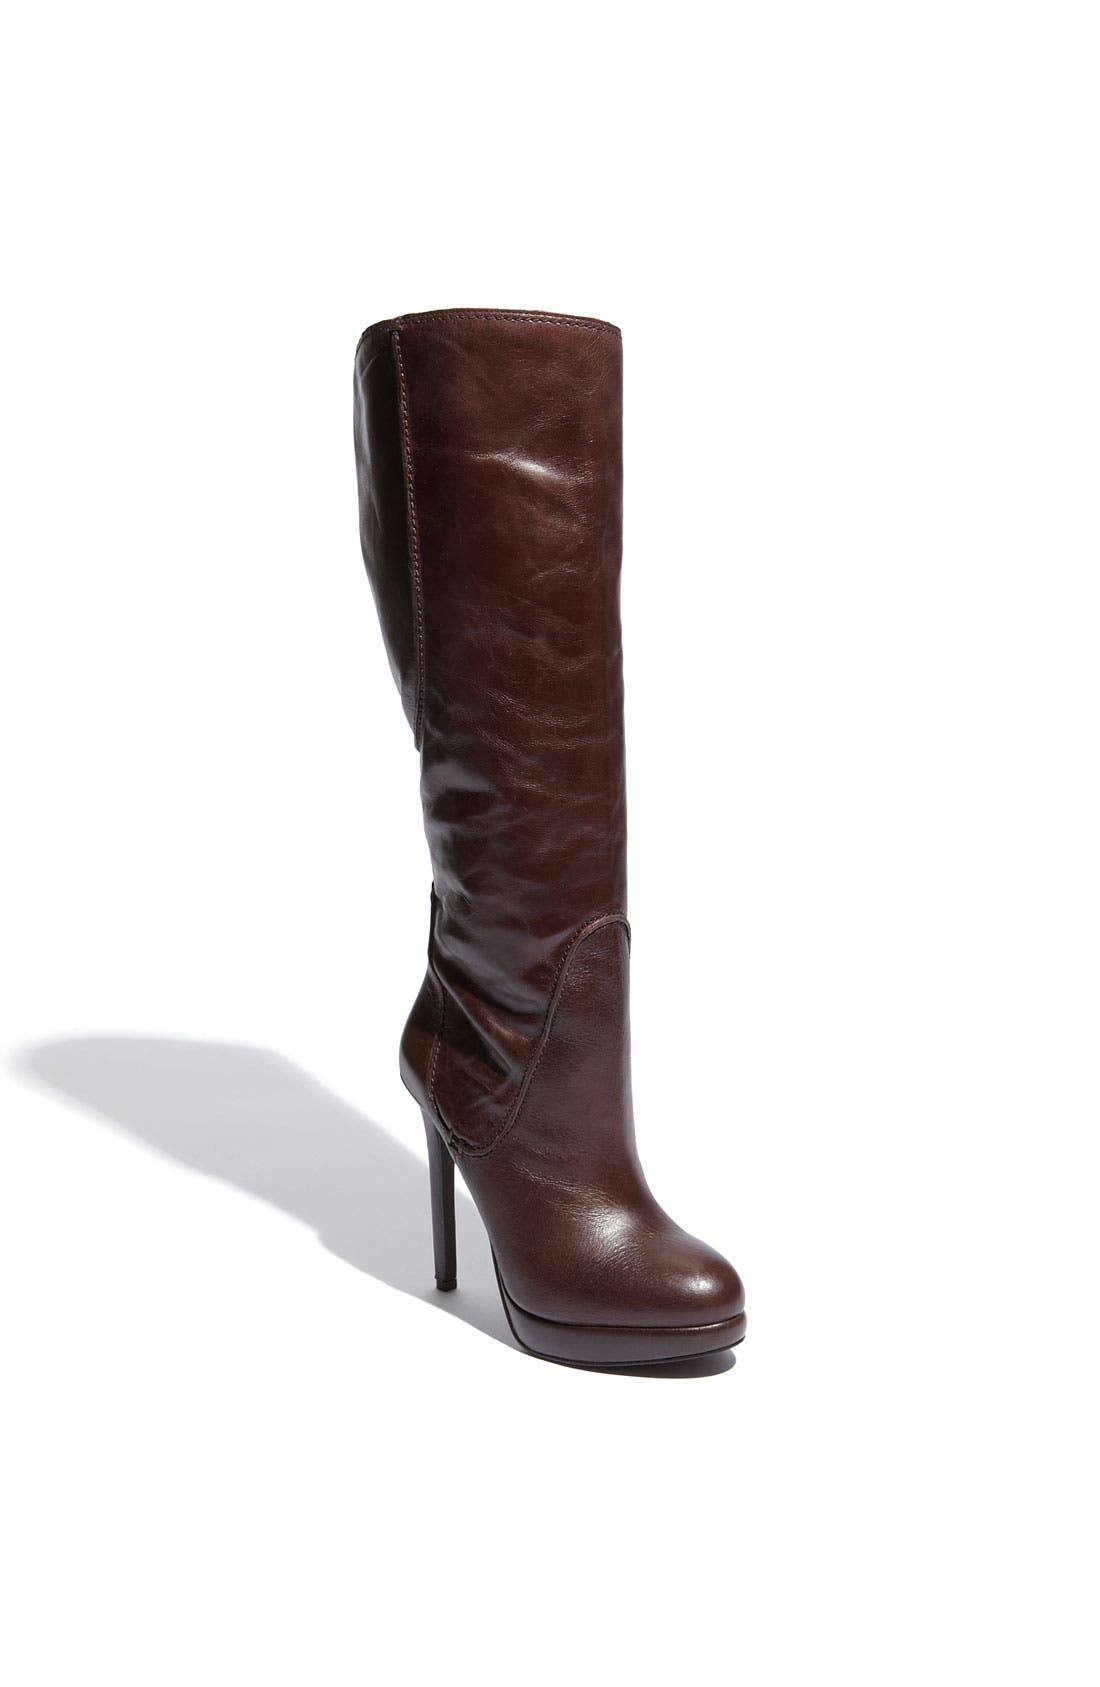 Main Image - Jessica Simpson 'Stephena' Boot